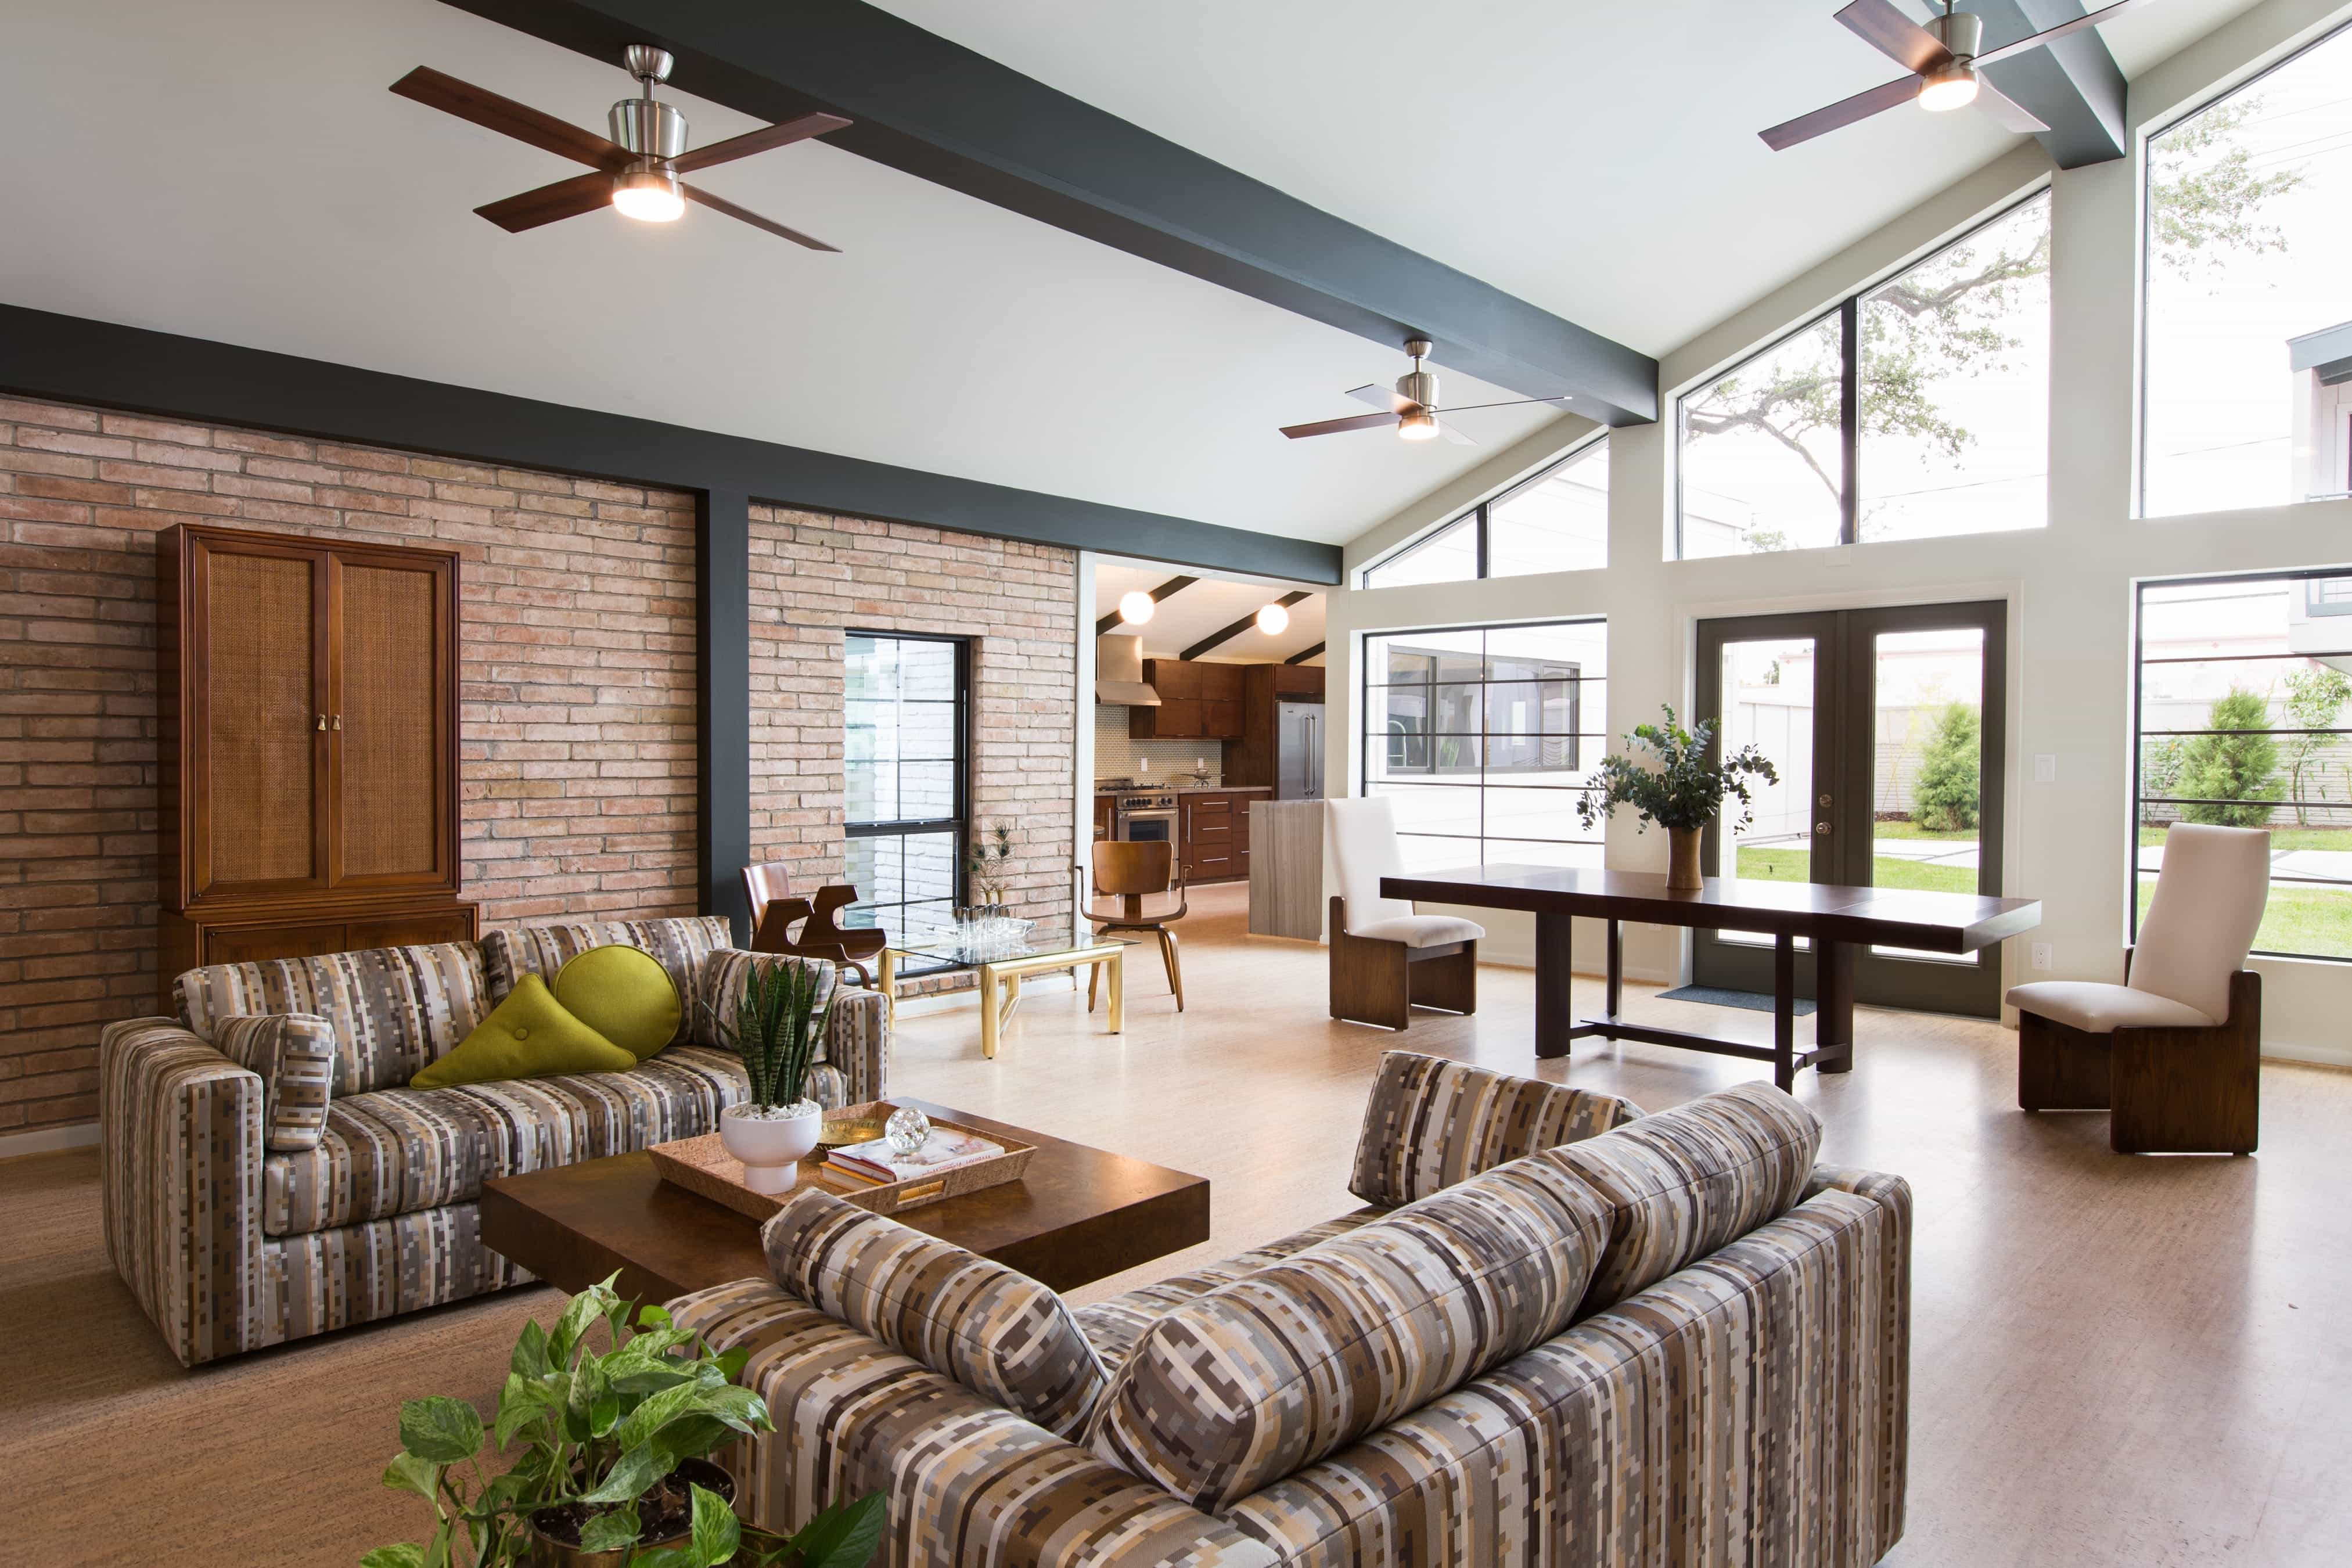 Spacious Modern Living Space With Vaulted Ceiling And Brick Wall (Image 25 of 30)